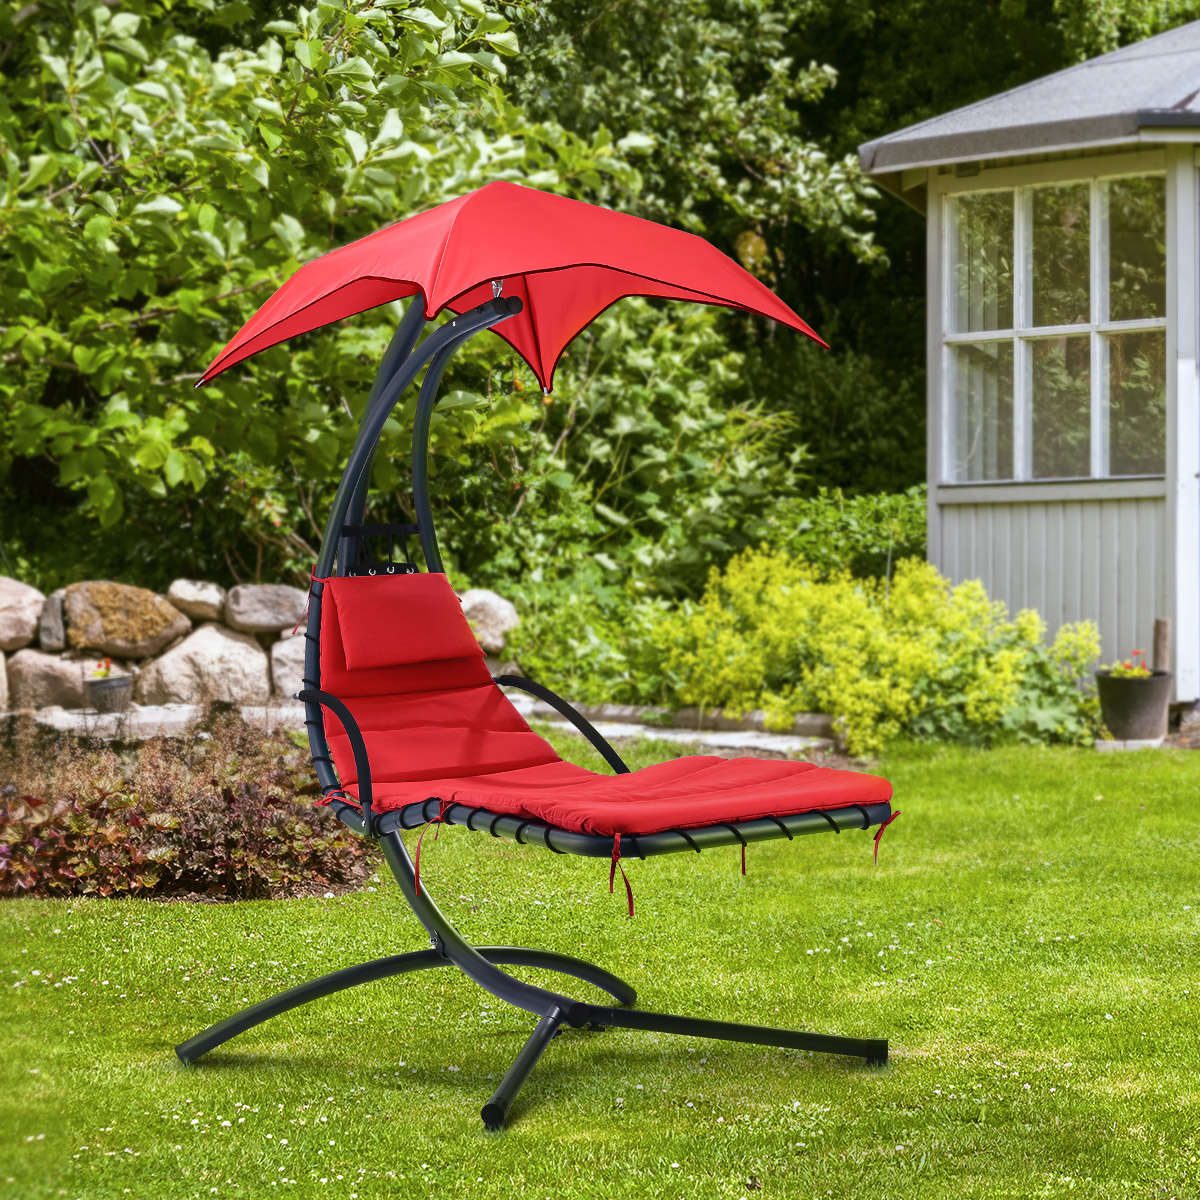 Hanging Chaise Lounge Hammock Chair Porch Patio Swing W